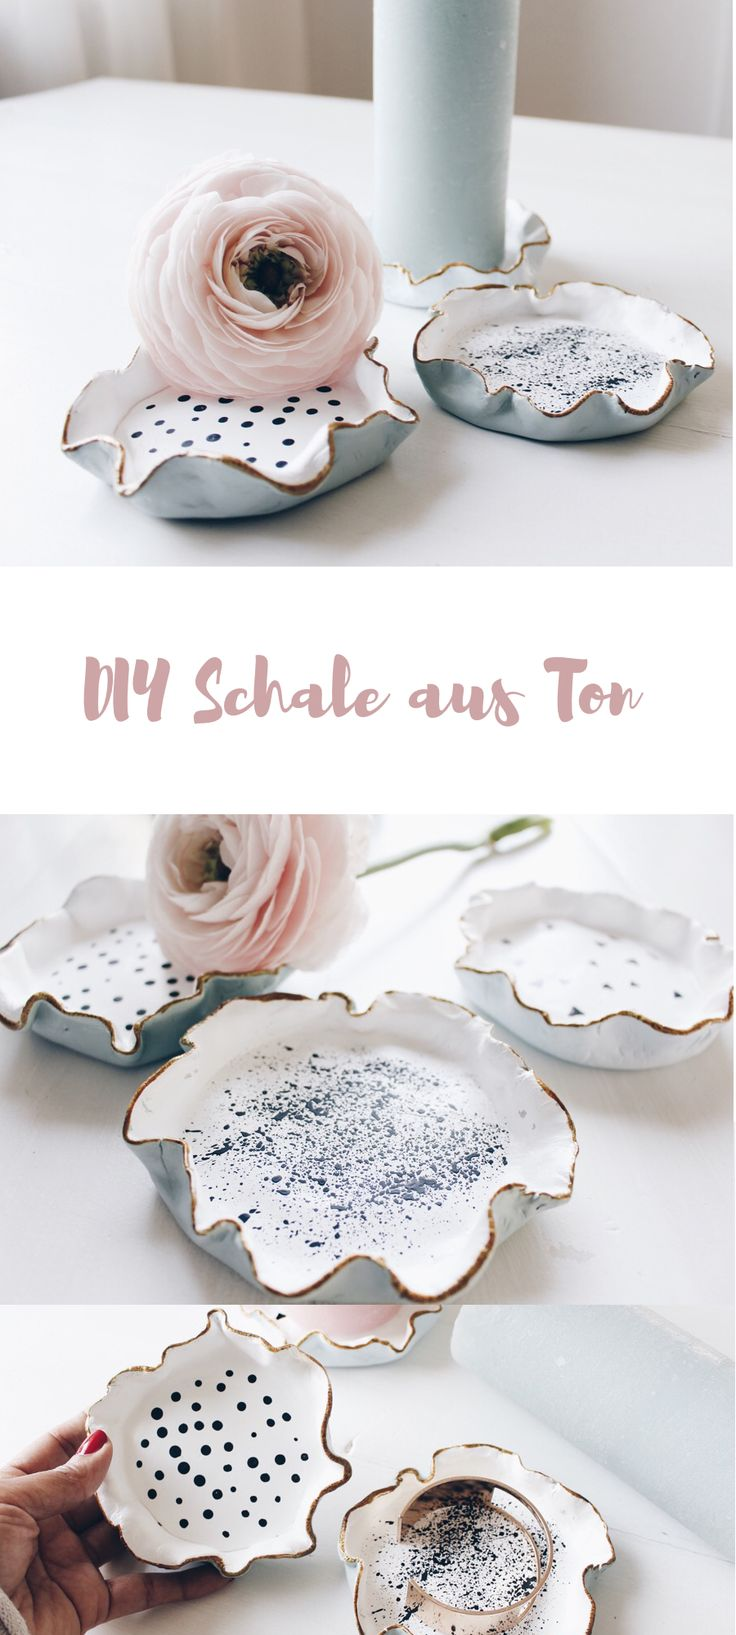 DIY shell made of clay – From gray is colorful